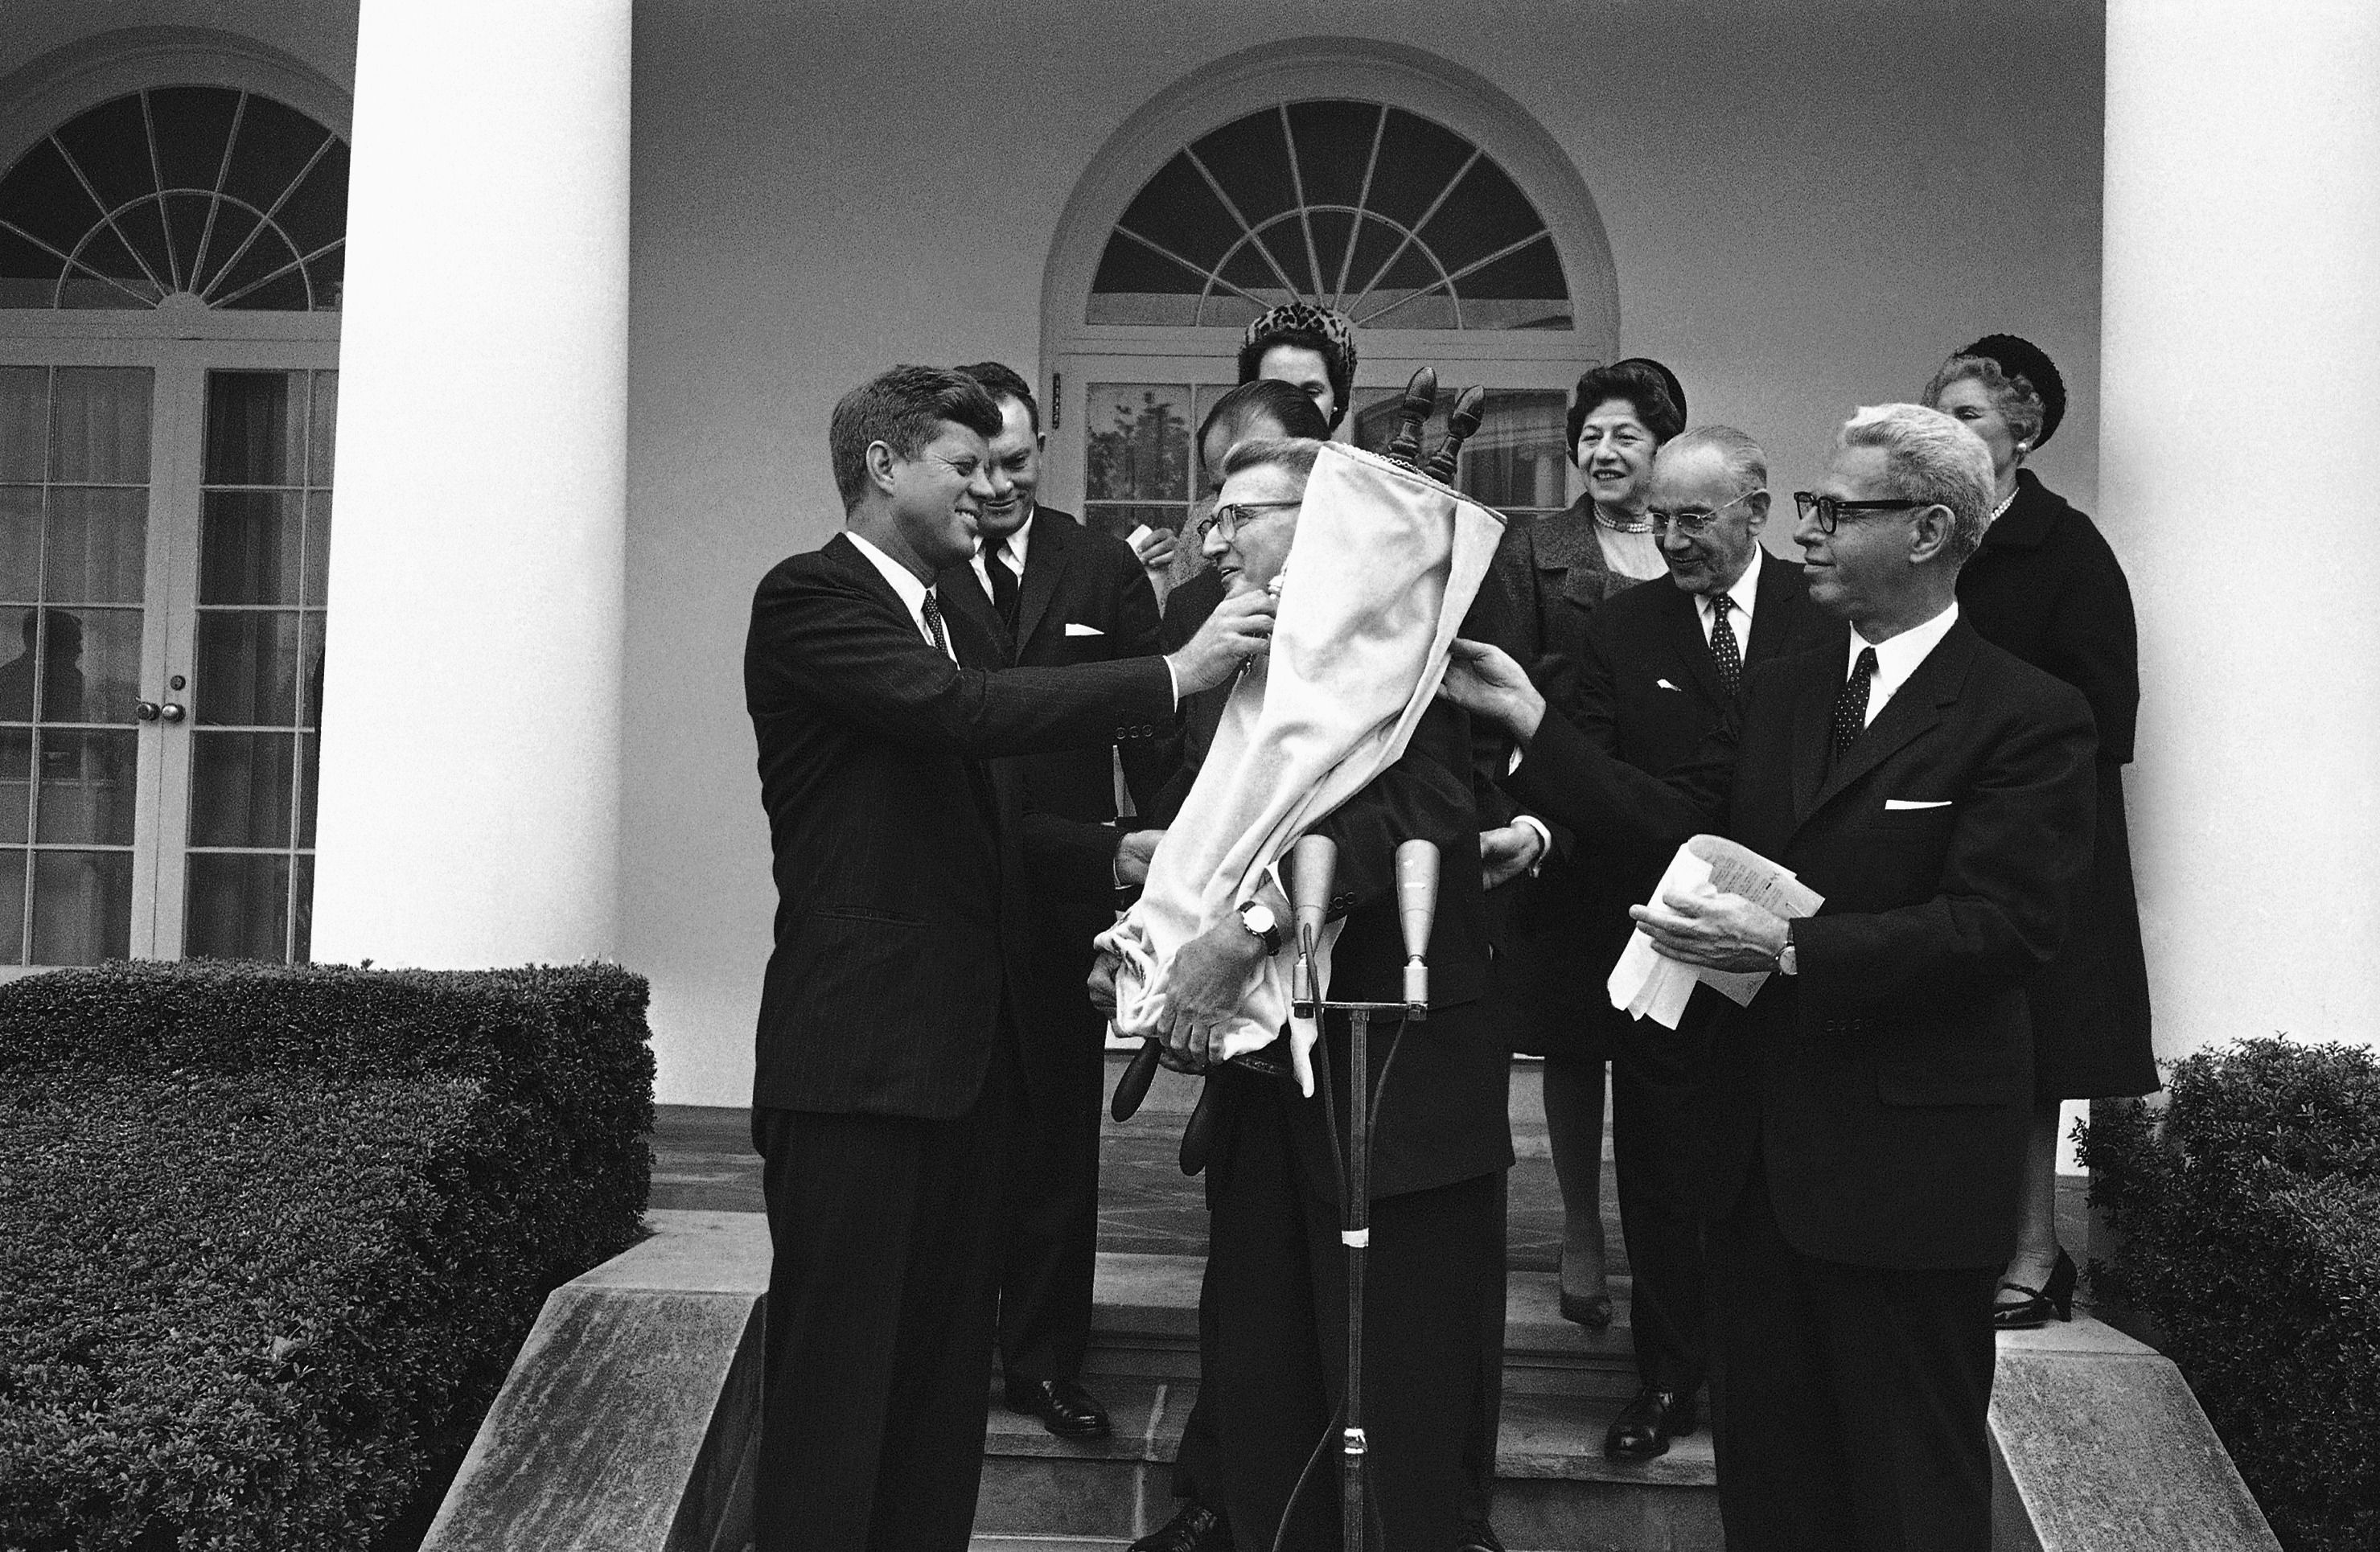 Thanks Jack:Members of the Religious Action Center present President John F. Kennedy with a Torah scroll to mark the founding of the group in 1961.